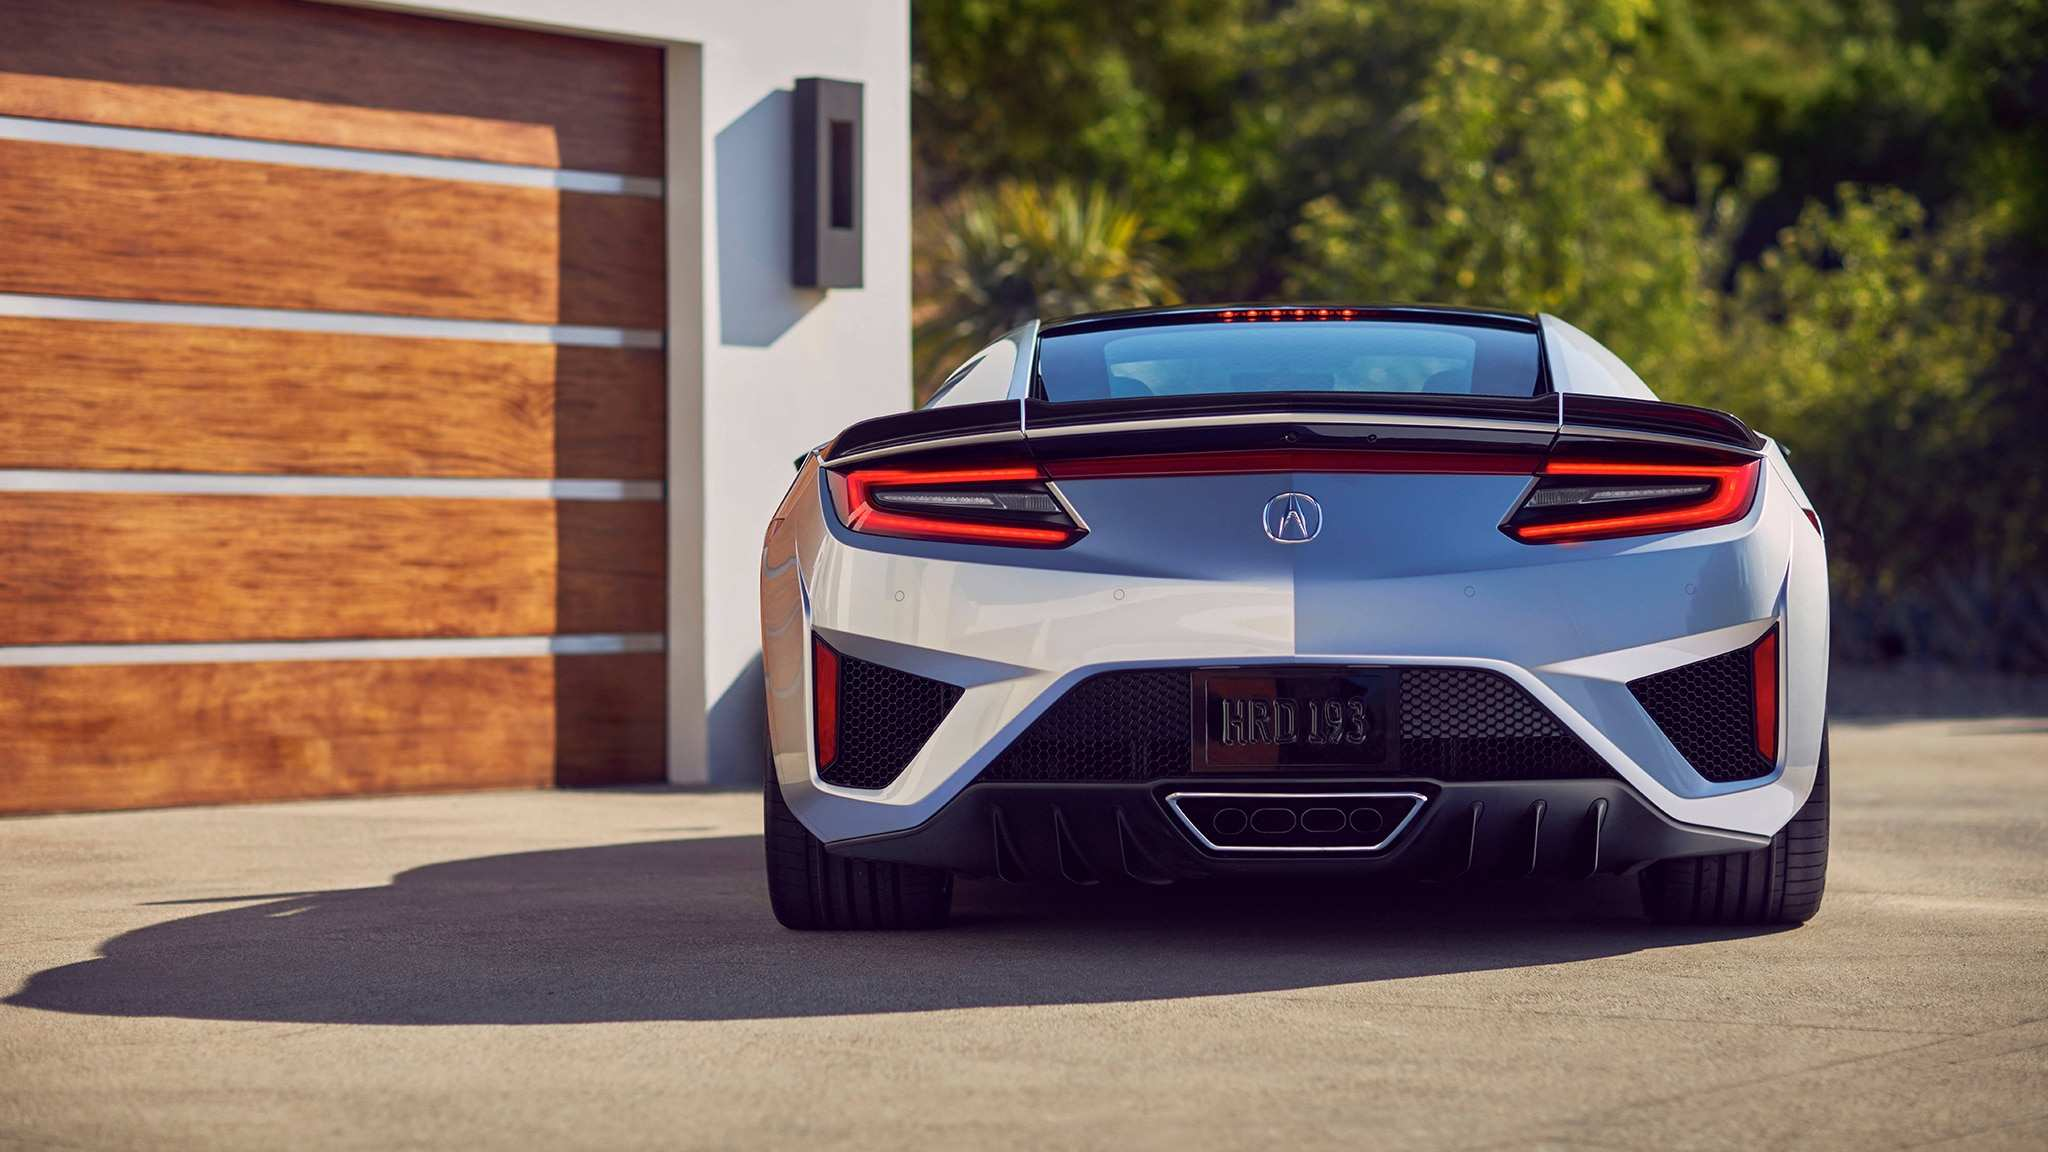 94 The Best 2019 Acura Nsx Horsepower Spy Shoot